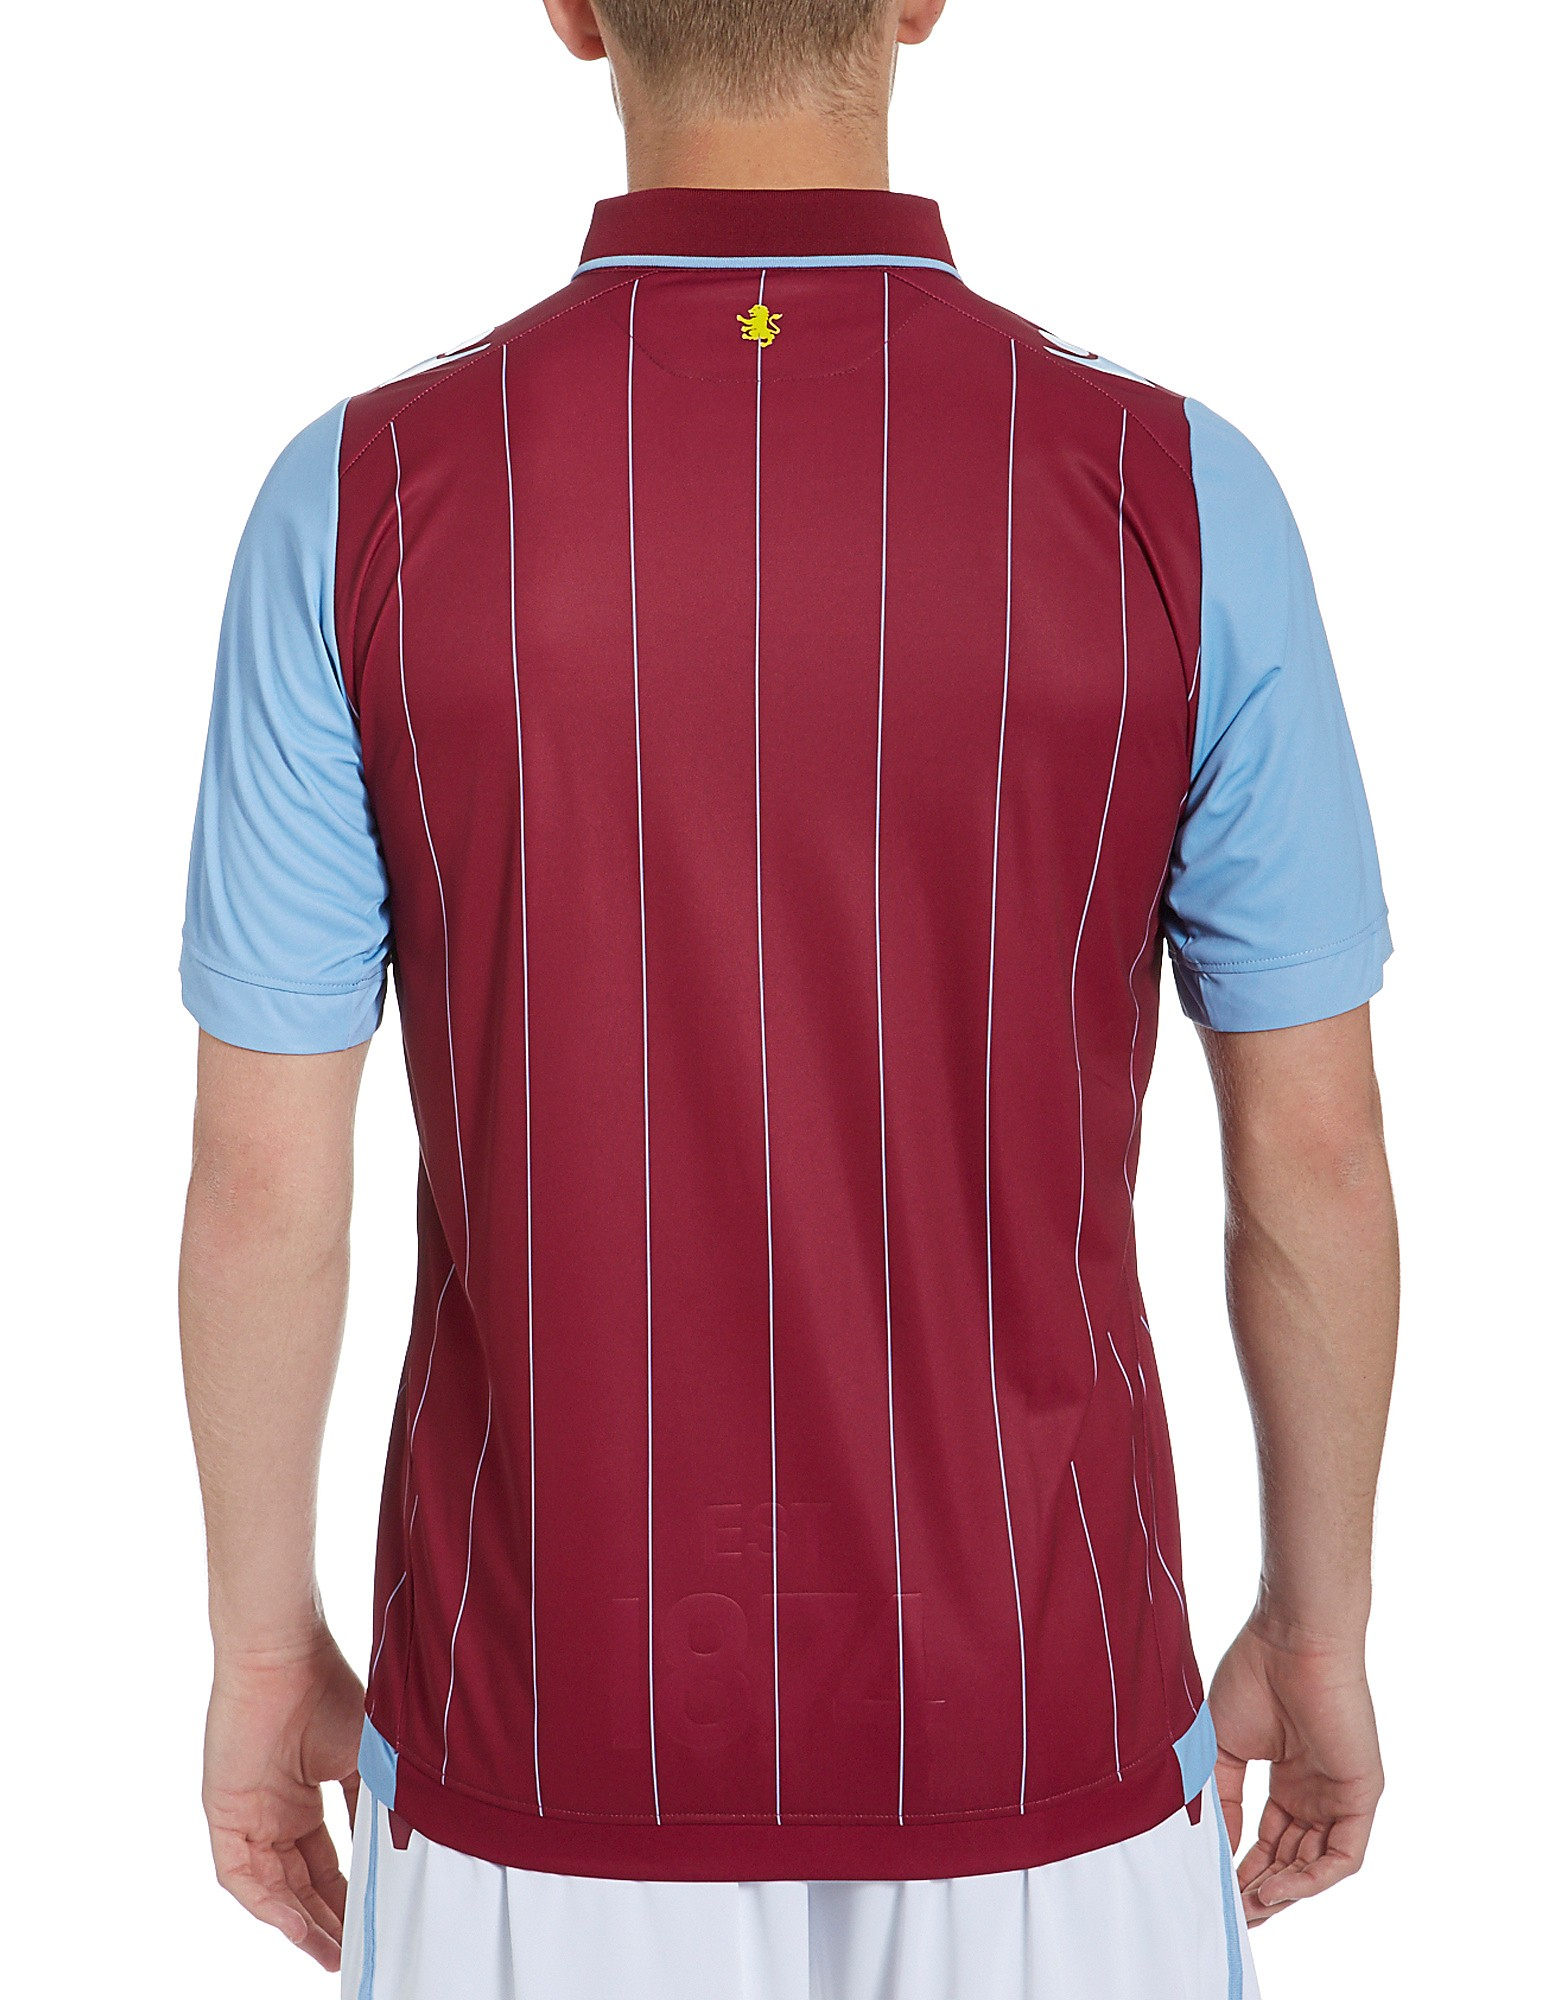 Macron Aston Villa 2014 Home Shirt